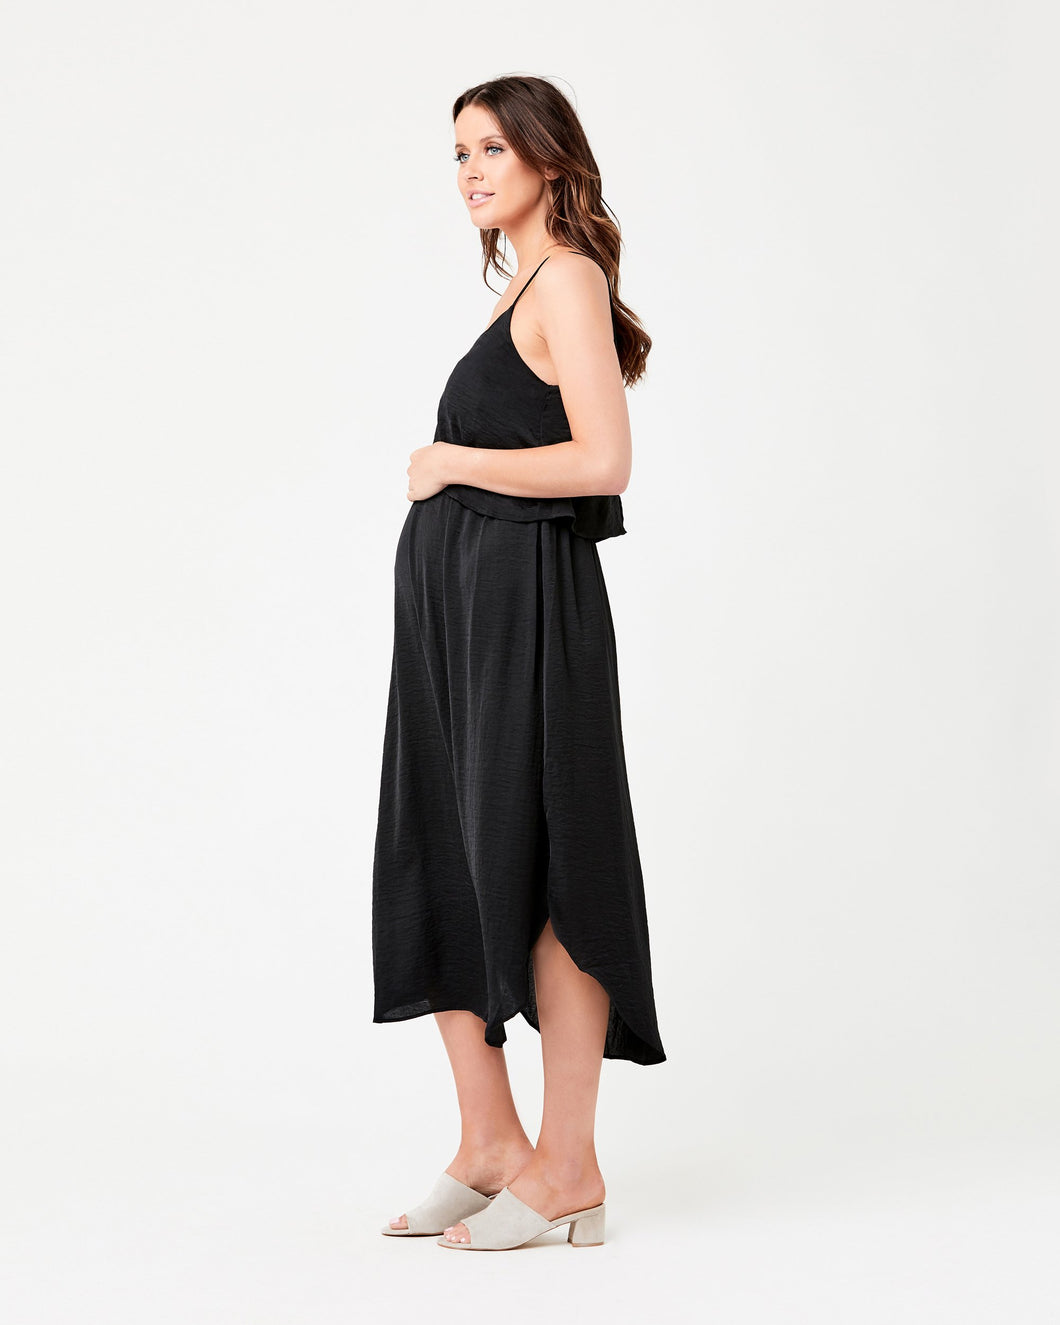 nursing slip dress